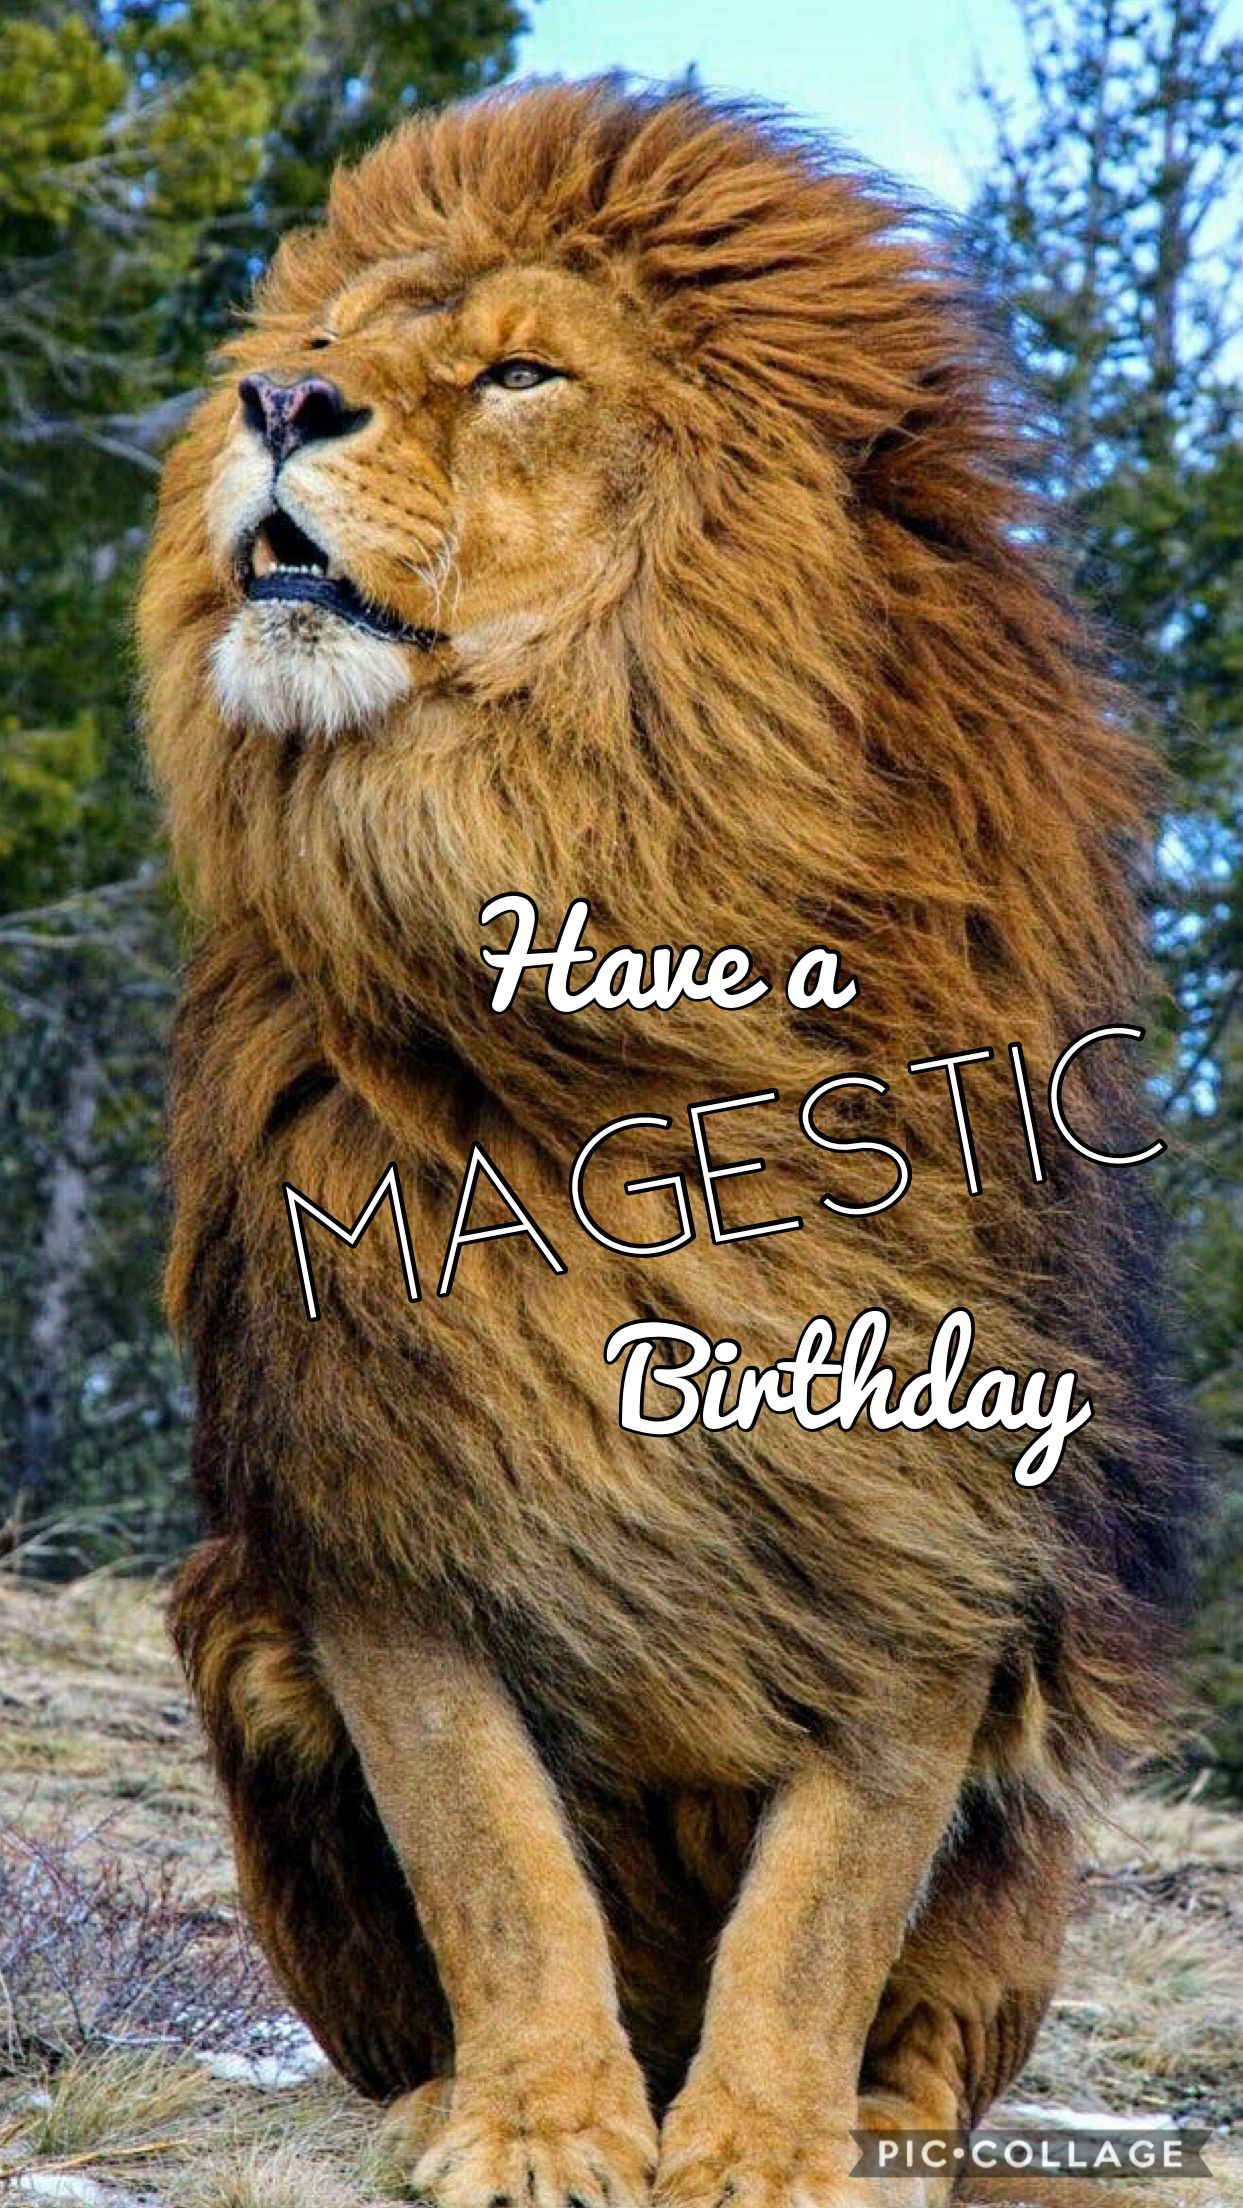 Have a magestic birthday wish for Godparents